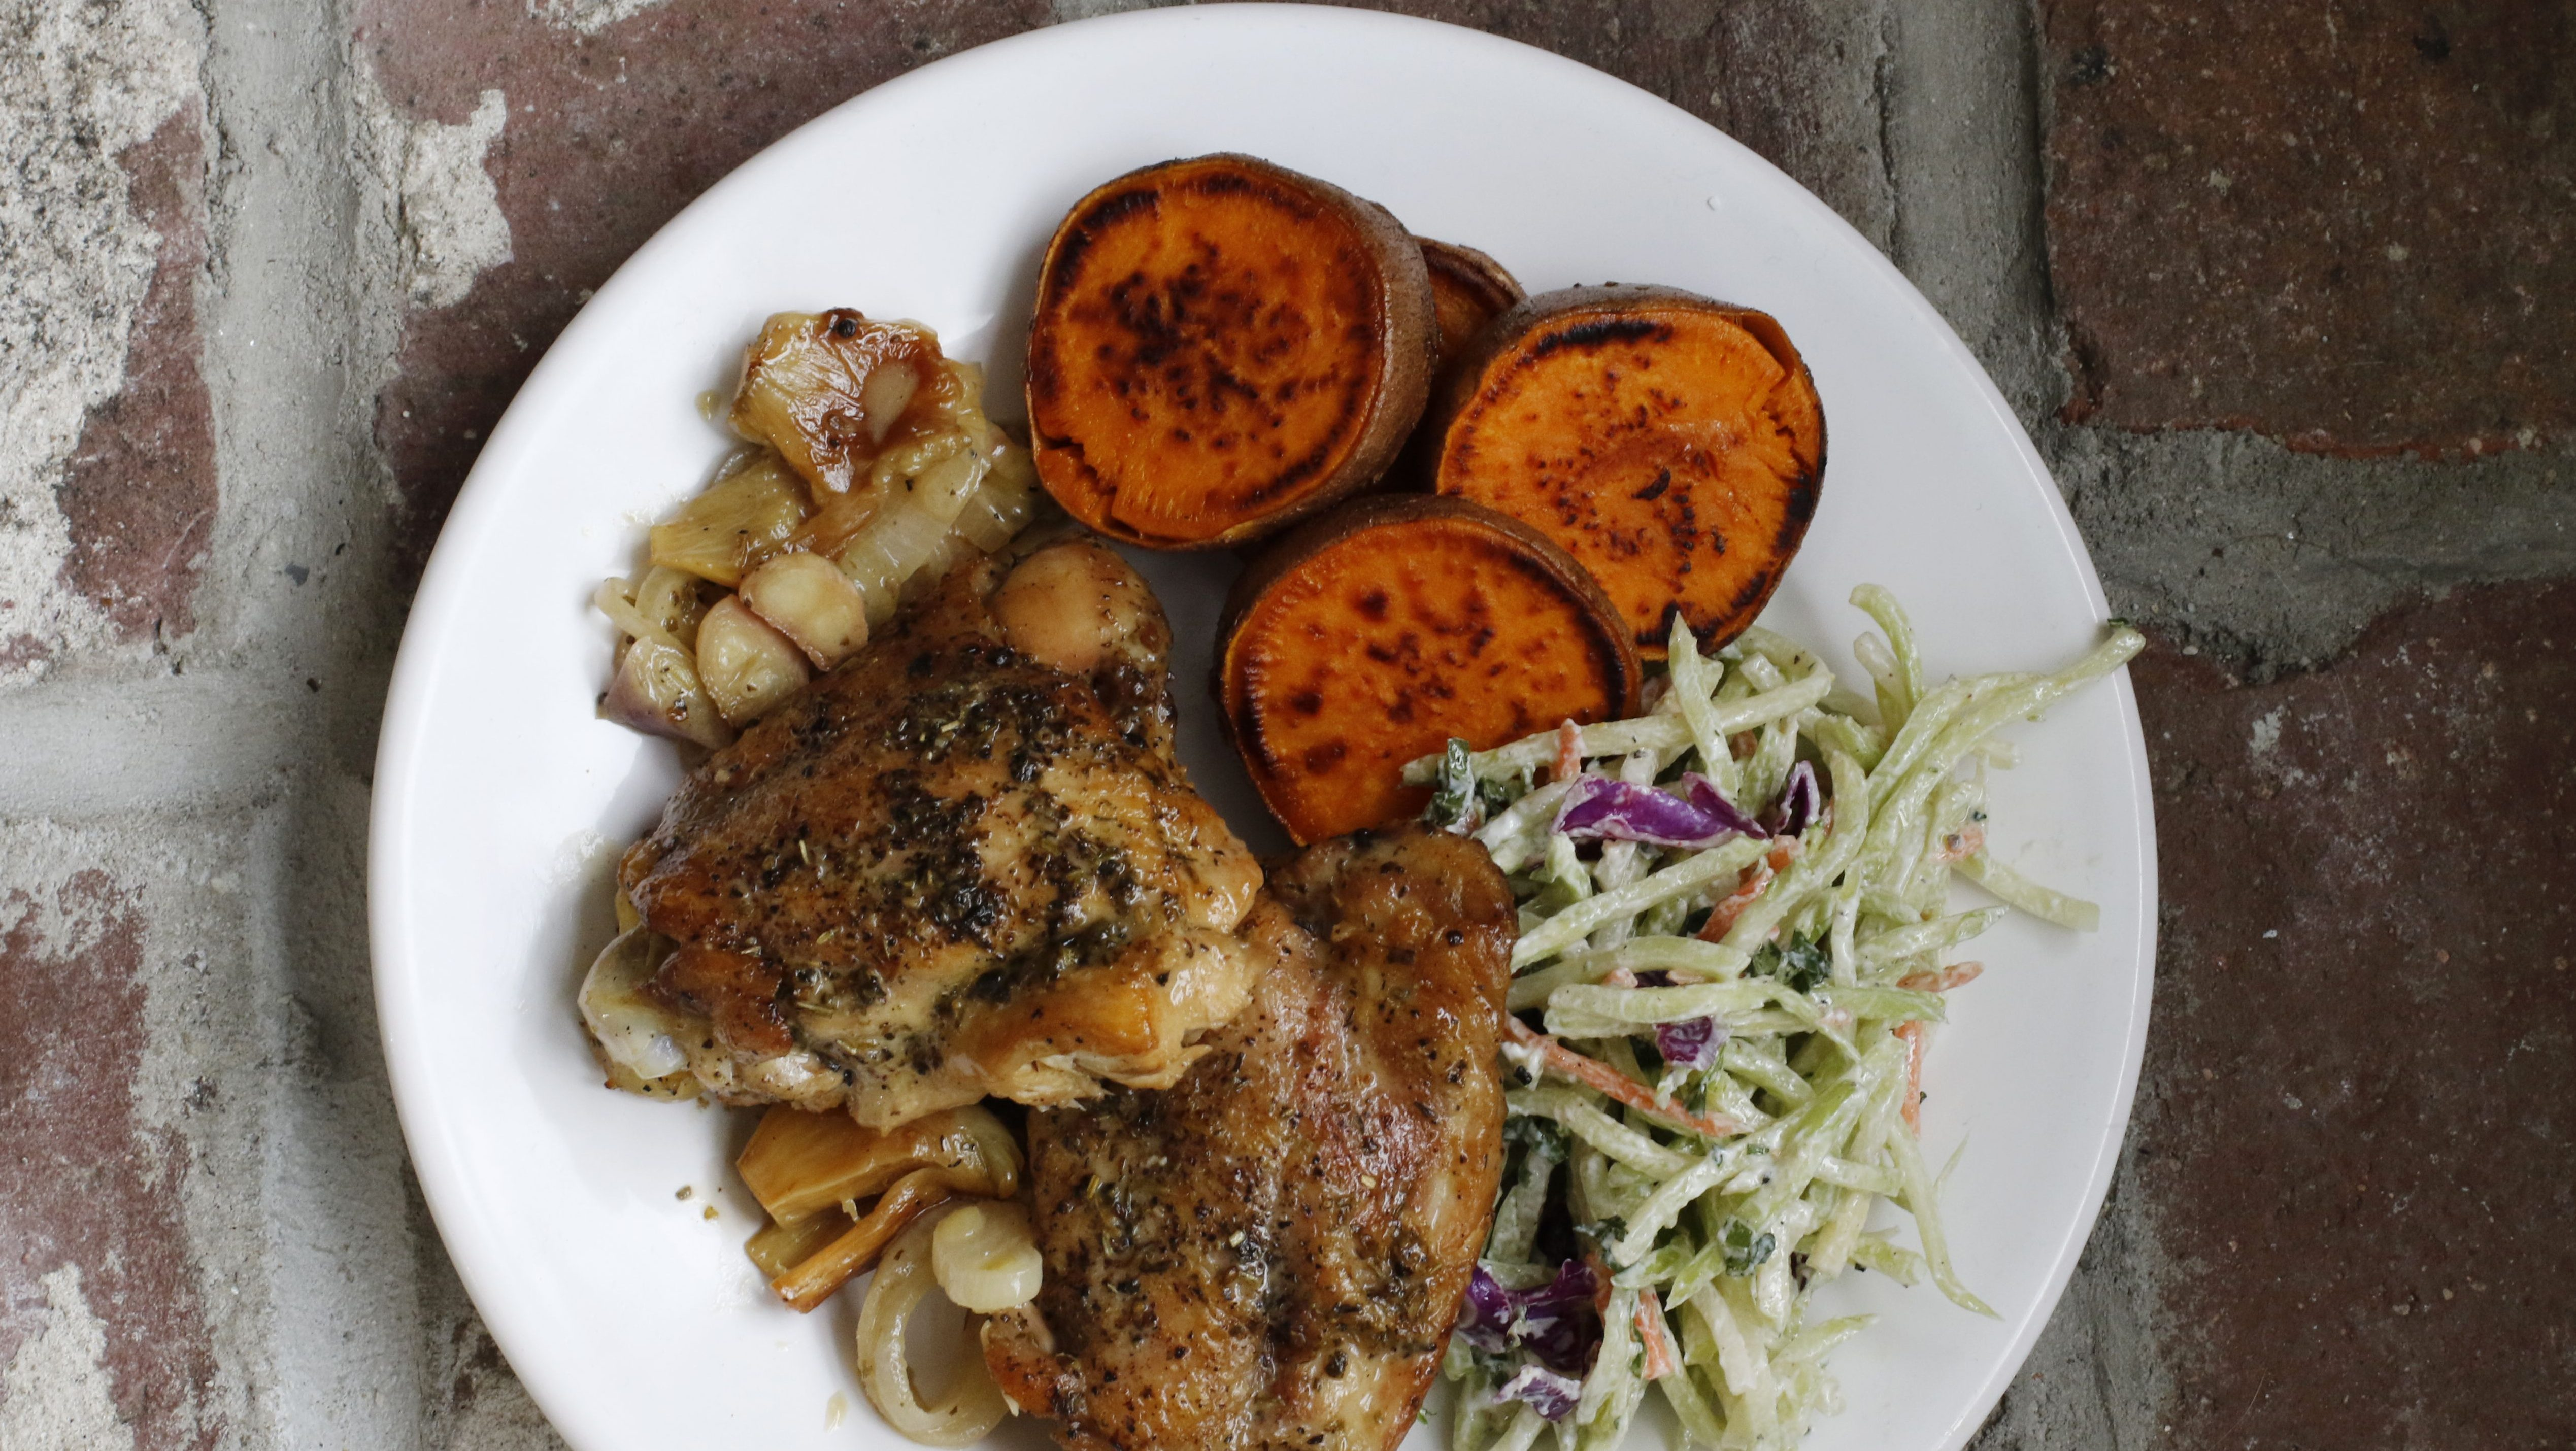 This March 7, 2016 photo shows best baked weeknight chicken in Concord, N.H. One-dish baked chicken dishes like this are a reliable and easy way to get dinner on the table fast during the workweek. (AP Photo/J.M. Hirsch)